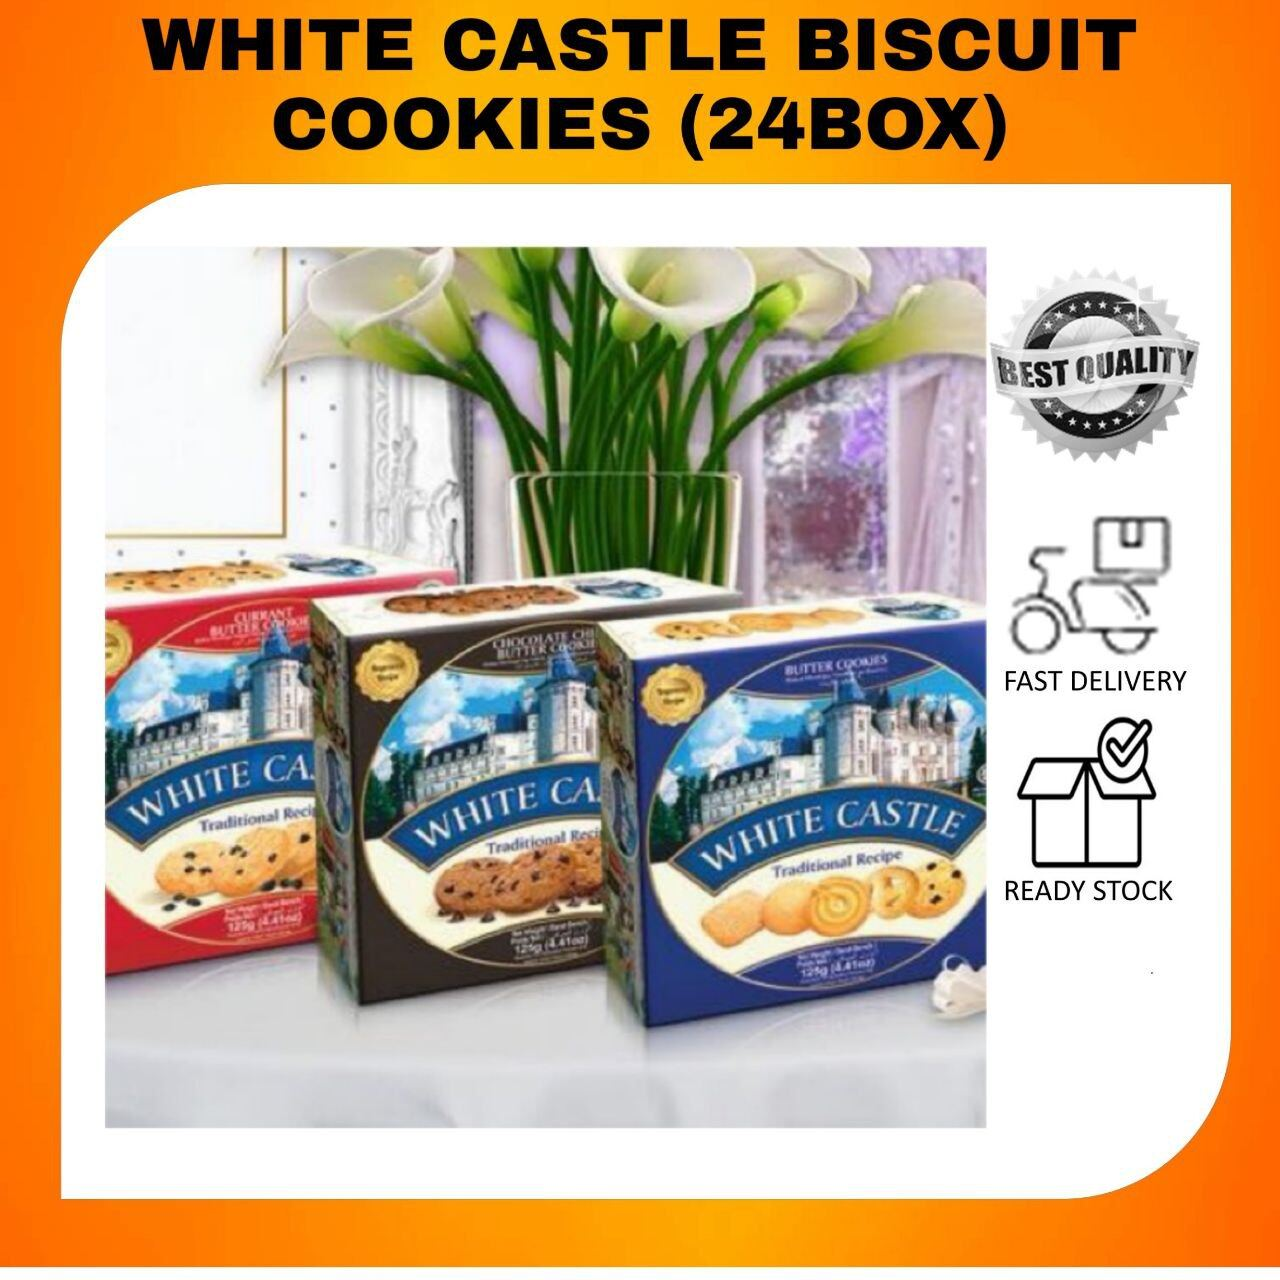 WHITE CASTLE BISCUIT 90G 1 CARTON (24 BOXES)